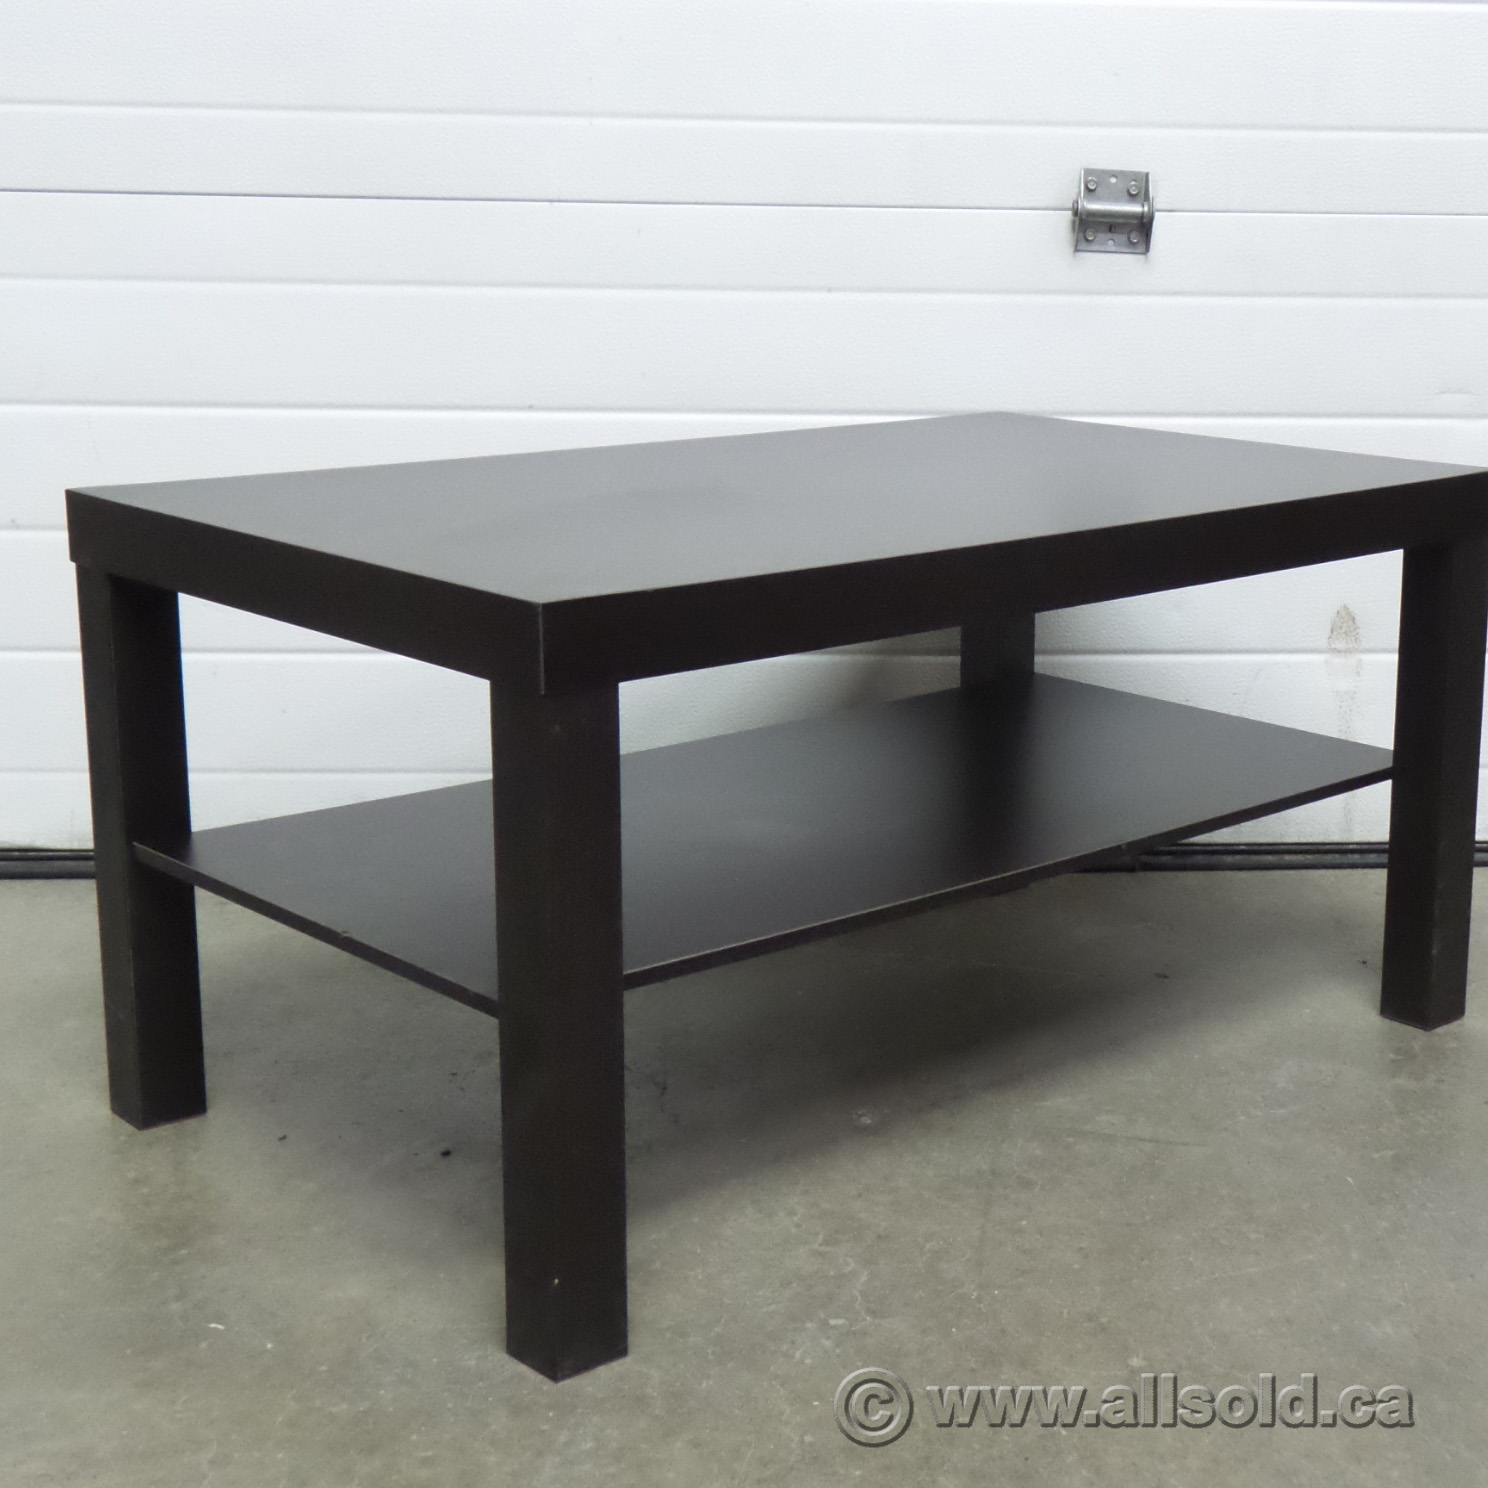 ikea lack black coffee table buy sell used office furniture calgary. Black Bedroom Furniture Sets. Home Design Ideas